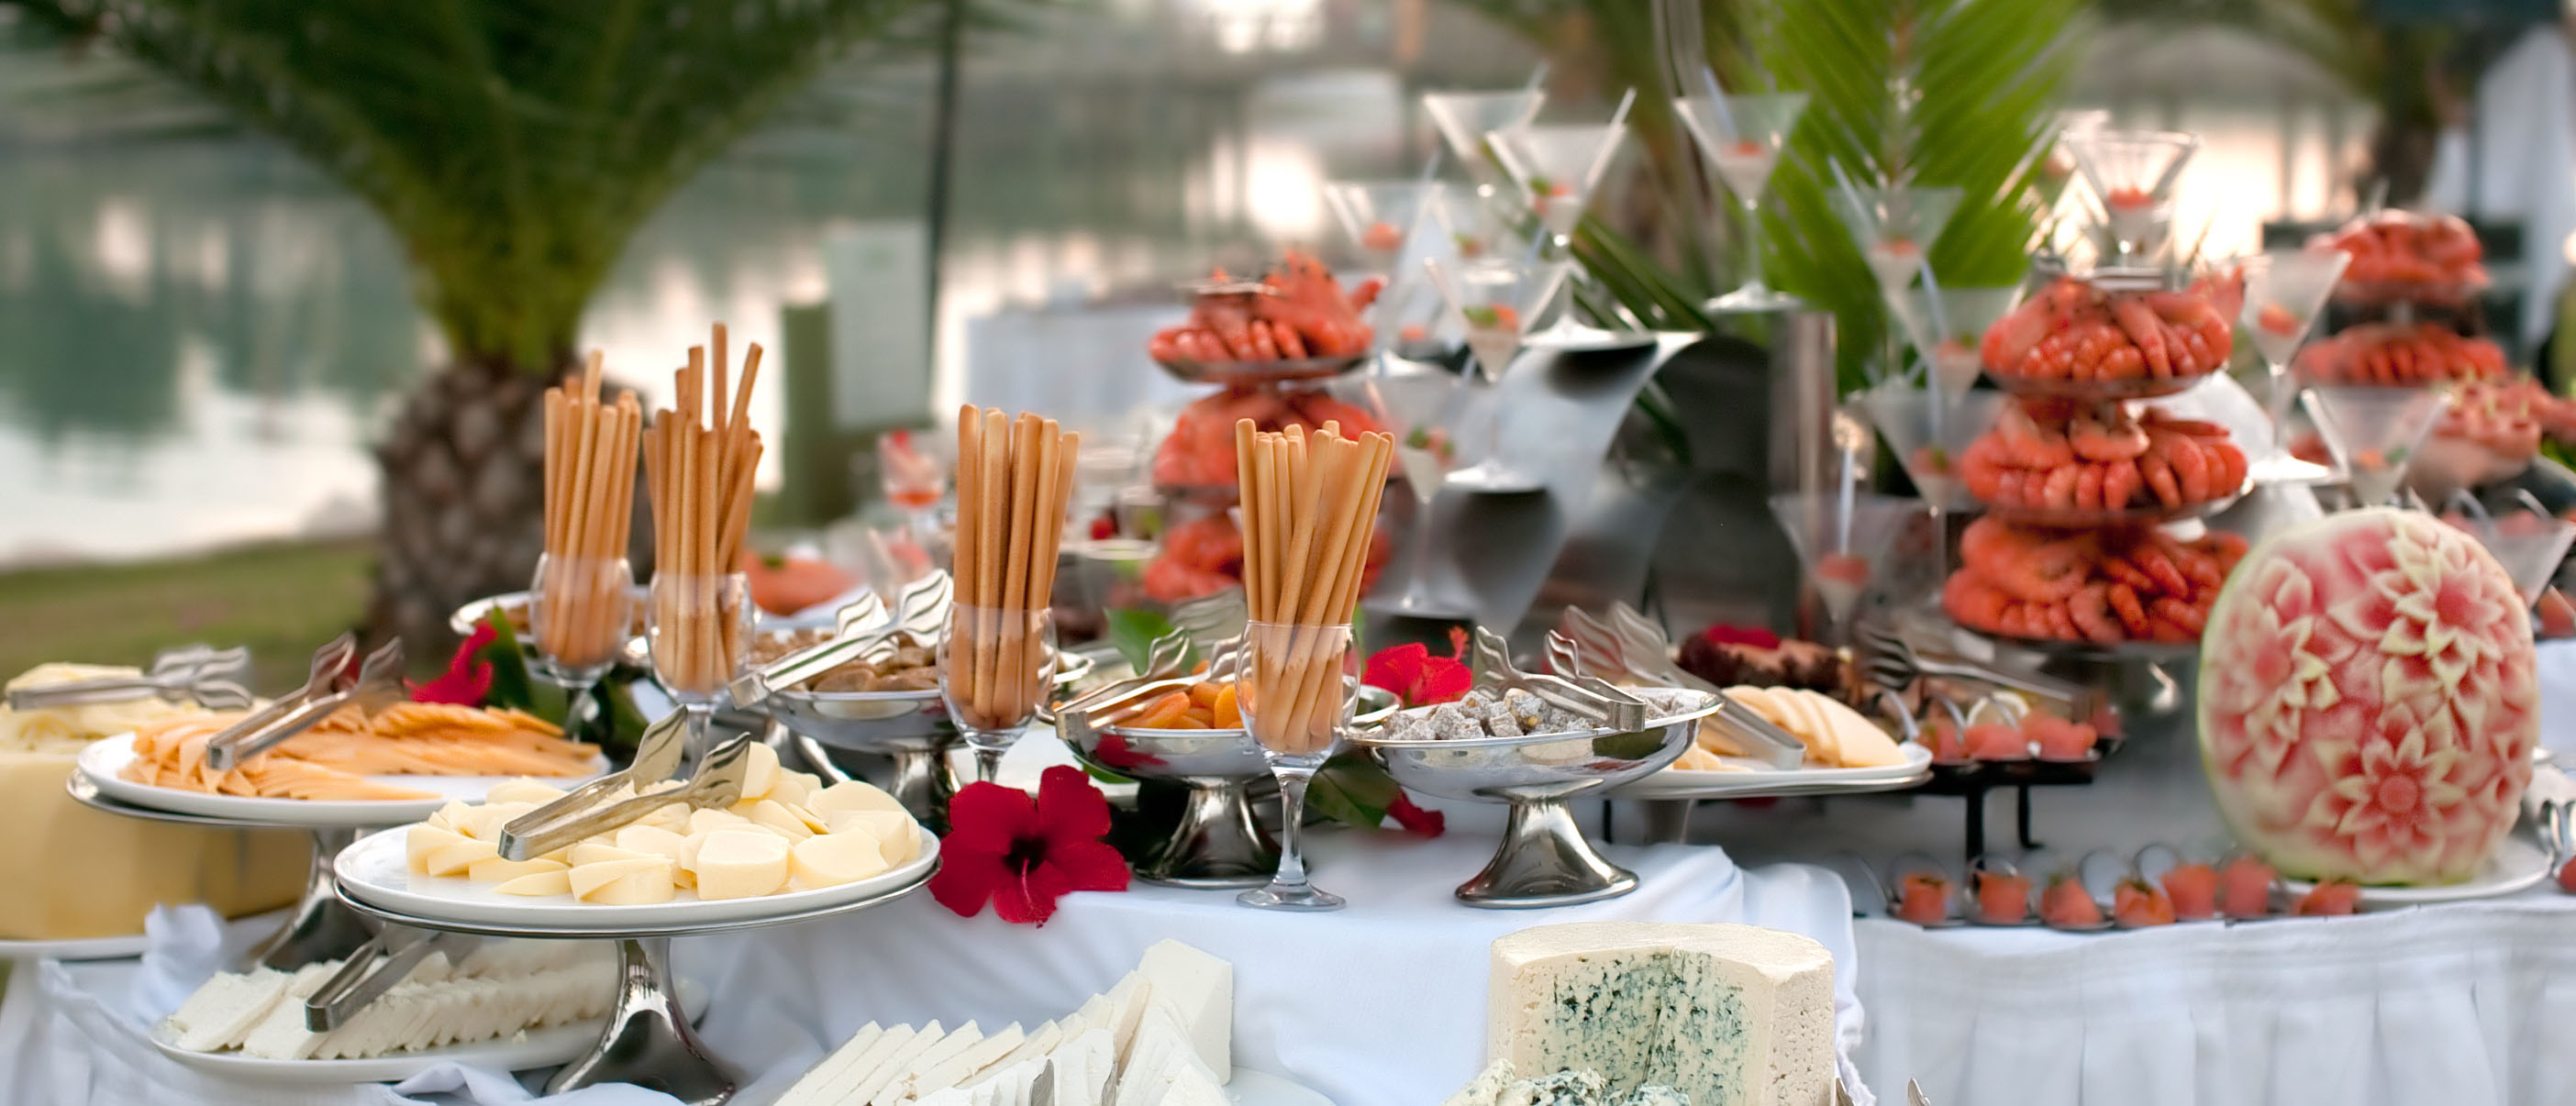 Significant And Widespread Wedding Catering MythsIndian Catering Singapore